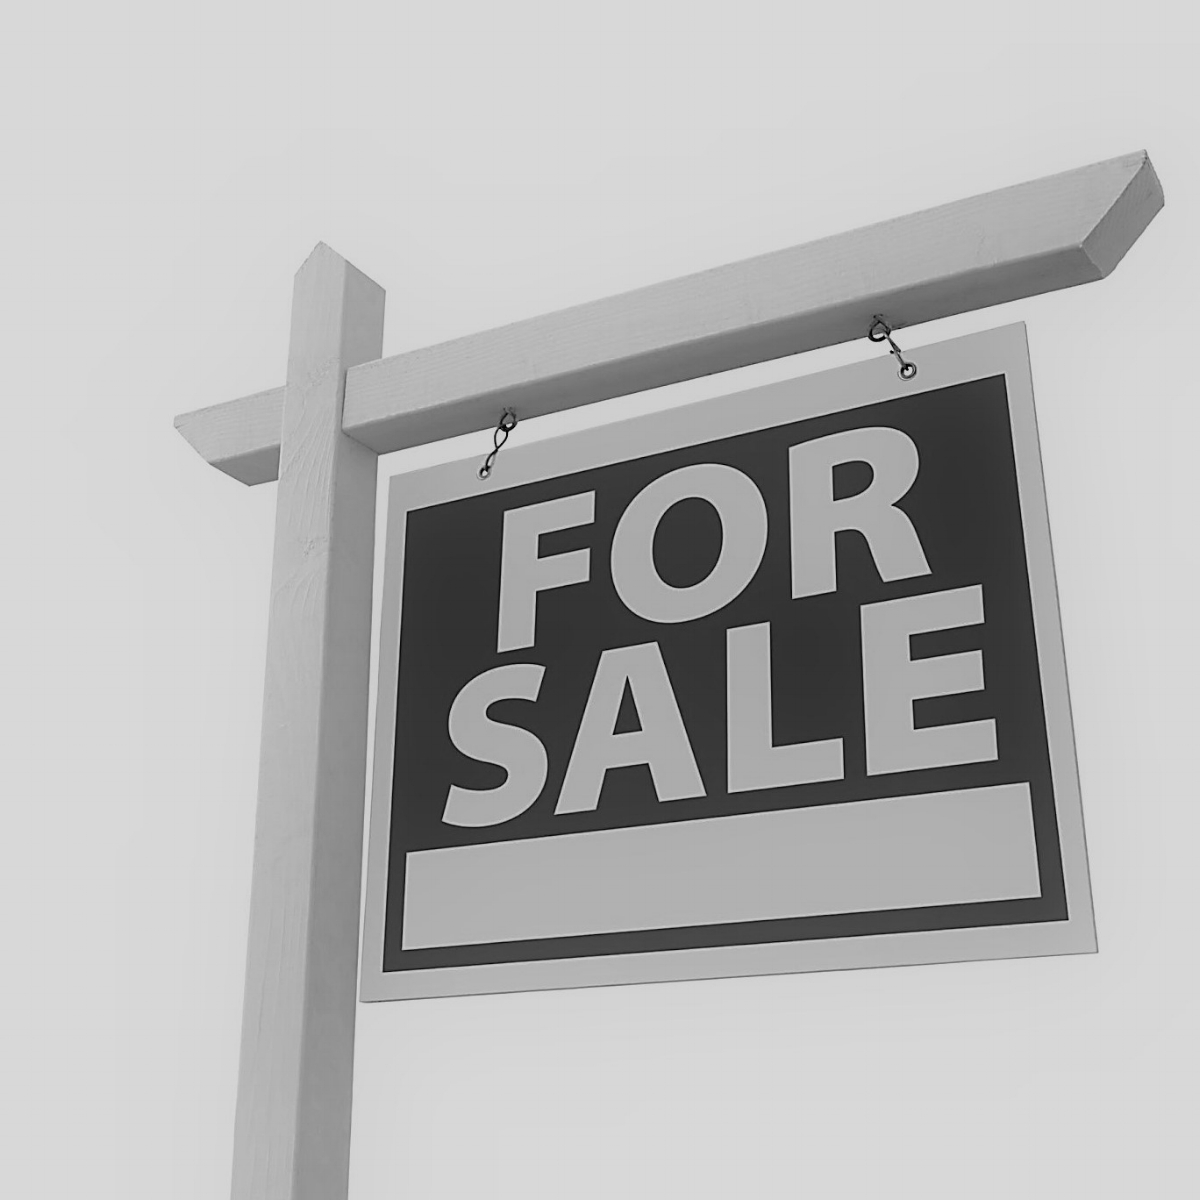 house-for-sale-sign-homes-for-sale-sign-for-sale-sign.jpg